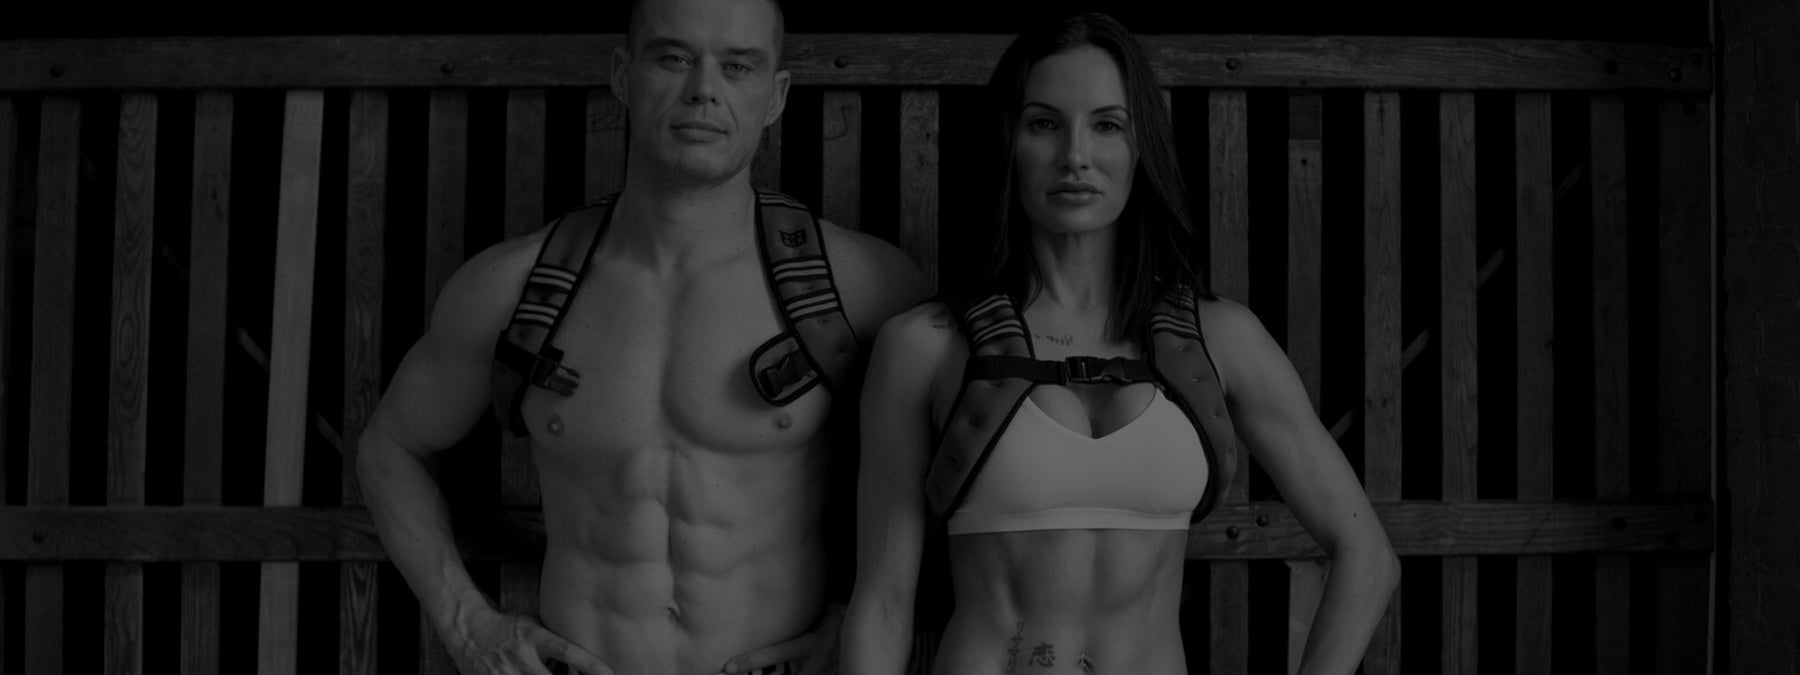 Black and White Image of Bodyrock Host Trainer Sean Light and Model Trainer Lisa Marie wearing Bodyrock weighted Vest